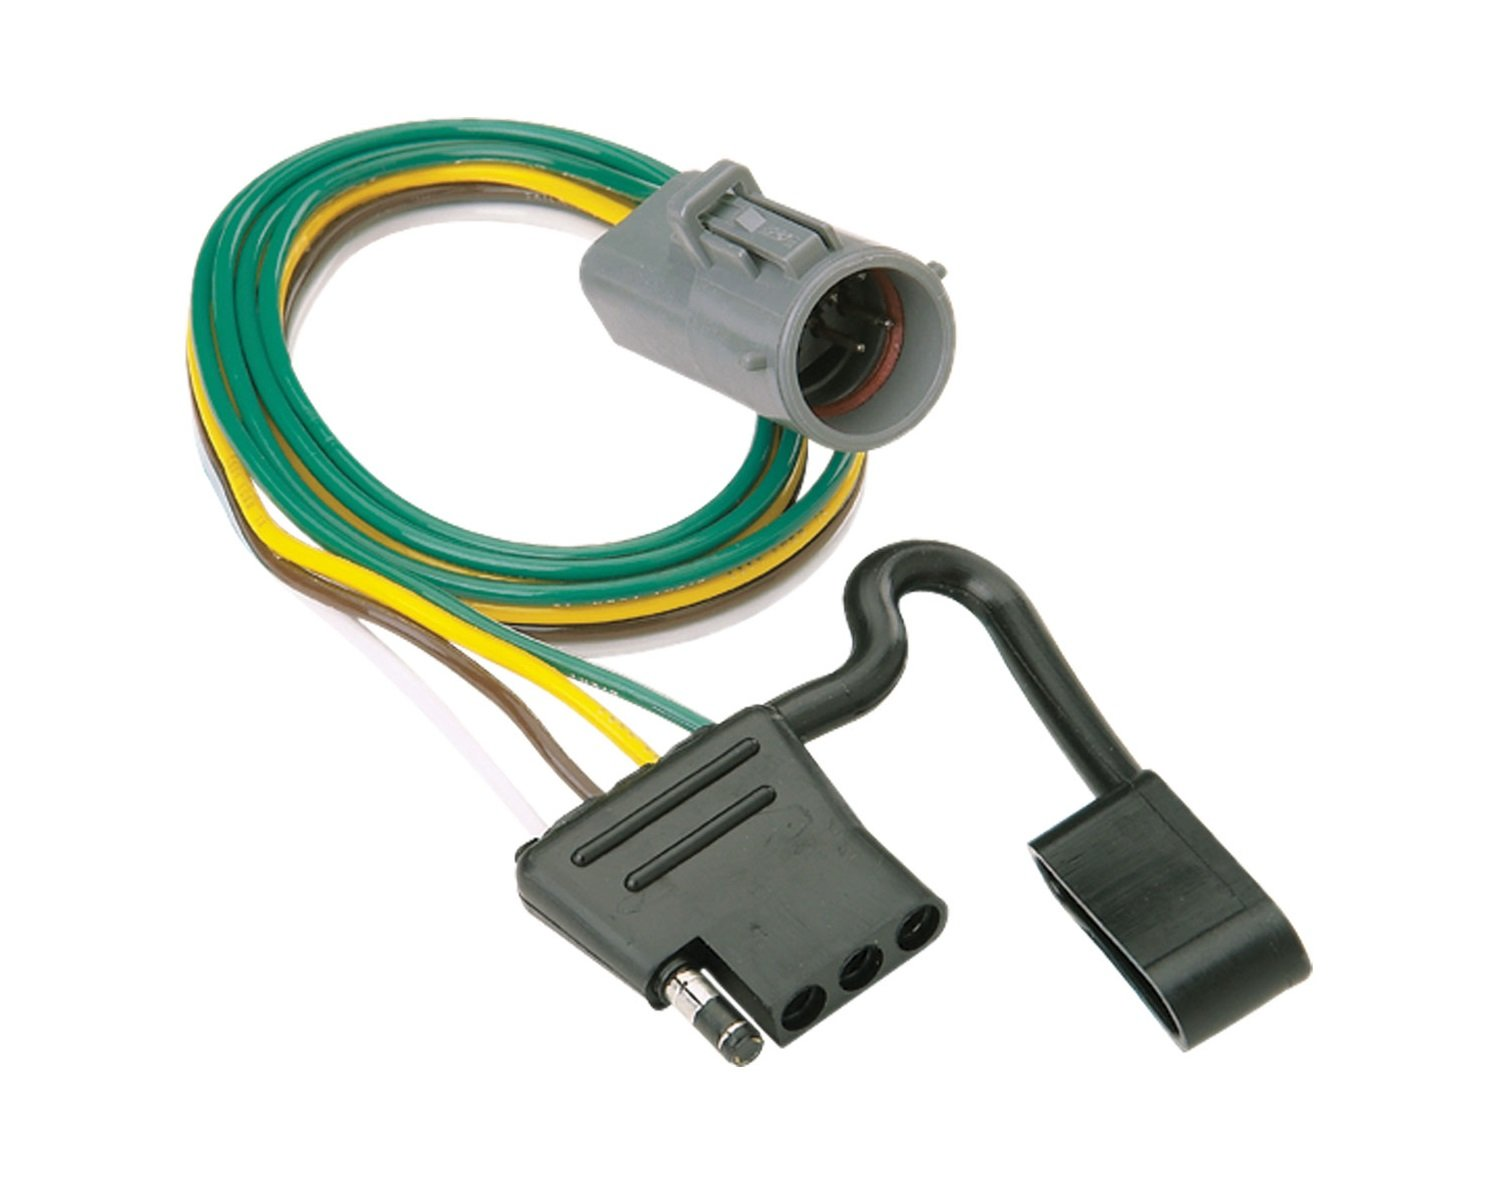 Amazon.com: Tekonsha 118241 4-Flat Tow Harness Wiring Package: Automotive